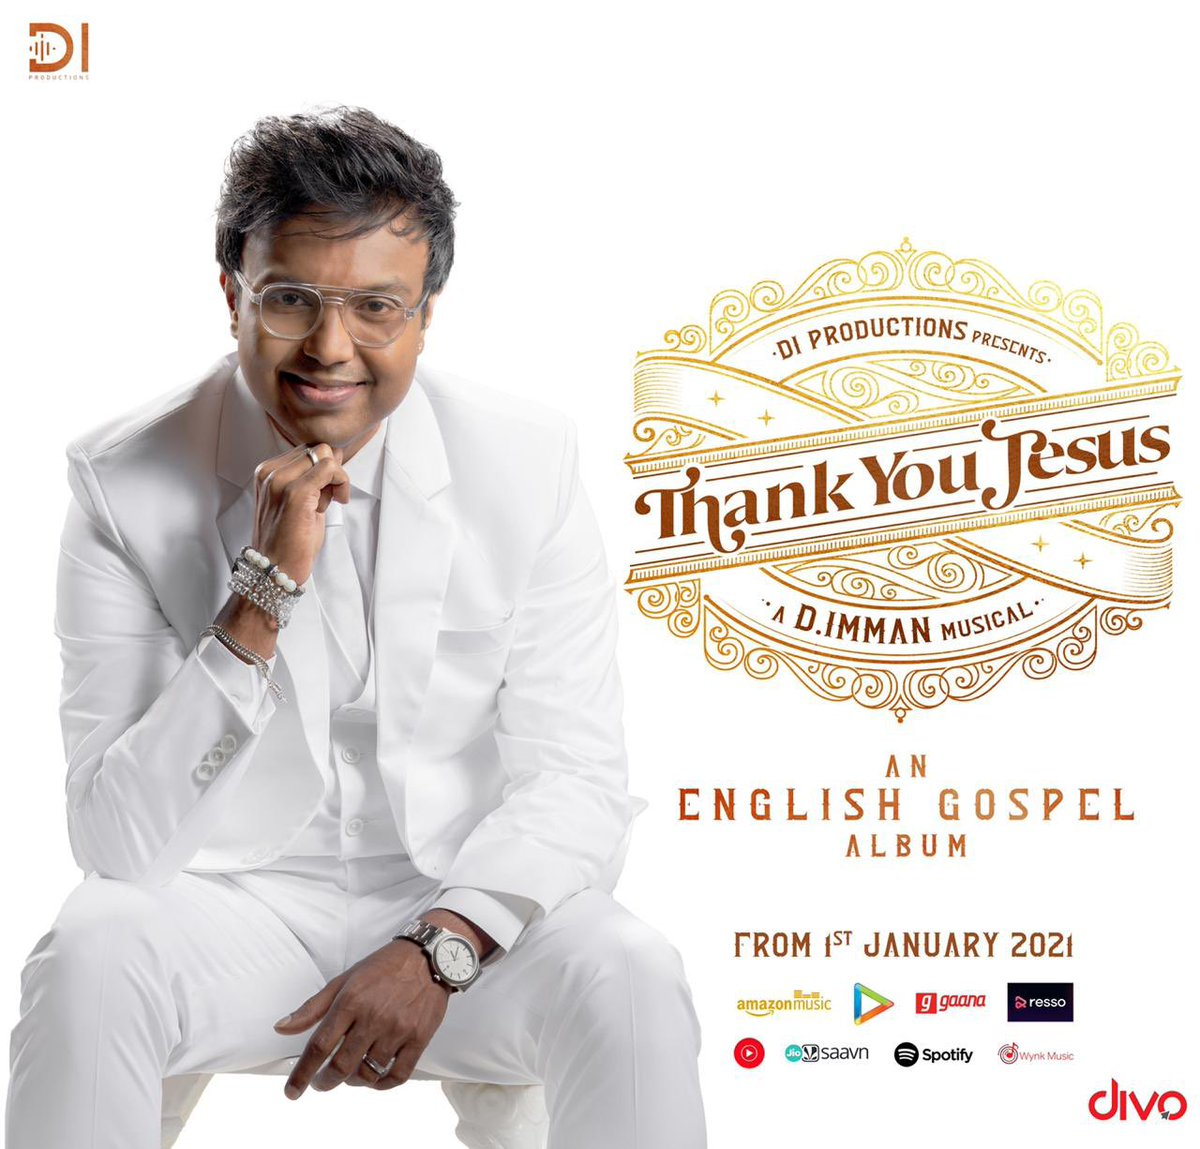 Immense Joy to launch @immancomposer 's #DIProductions #ThankYouJesus An English Gospel Album!  #DImmanMusical @divomovies @DoneChannel1  Official YouTube Link:-    Official Hyperlink to Multiple Audio Streaming Platforms:-